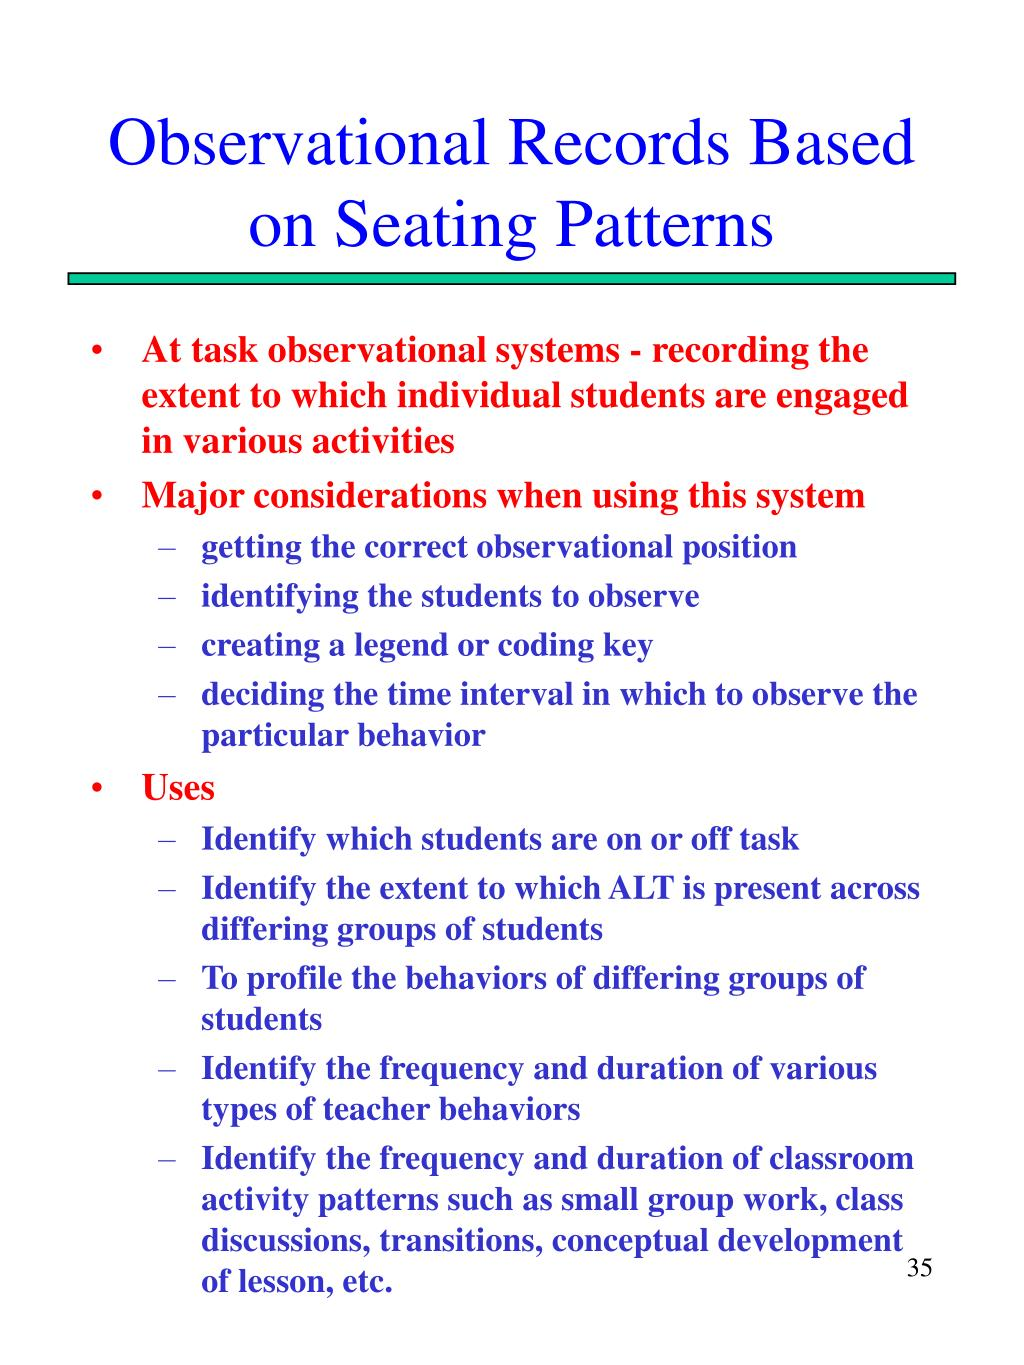 Observational Records Based on Seating Patterns